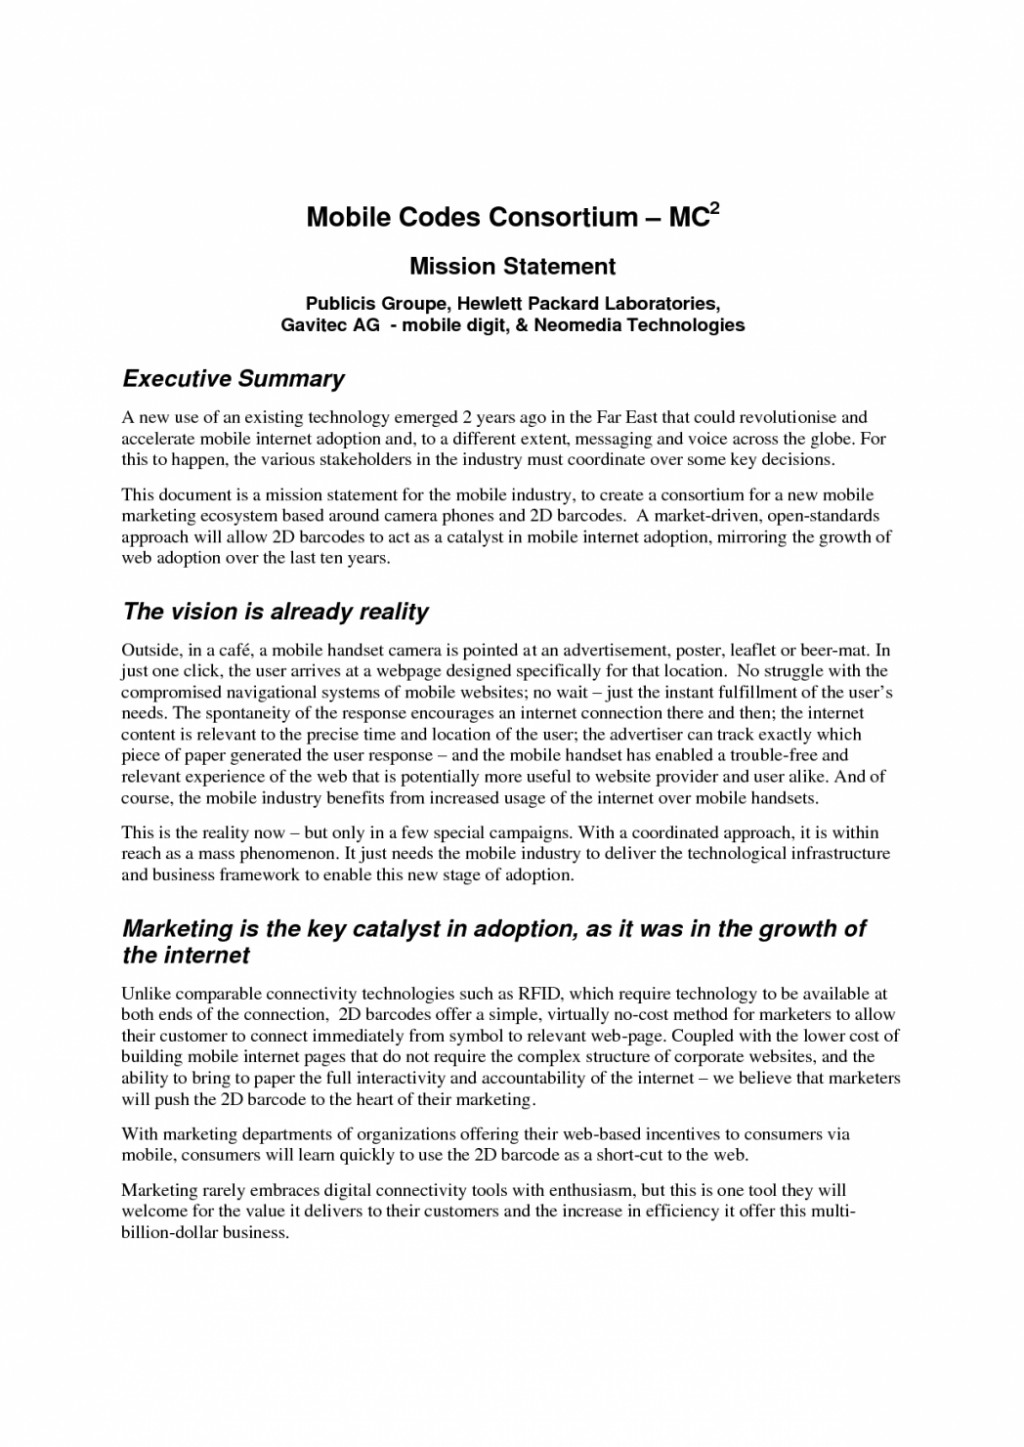 006 Argumentative Essay On Death Penalty Example Capital Punishment About The Arguments For Disney Mission Statement Template H1t Against Unbelievable Ideas Persuasive In Philippines Pro Large